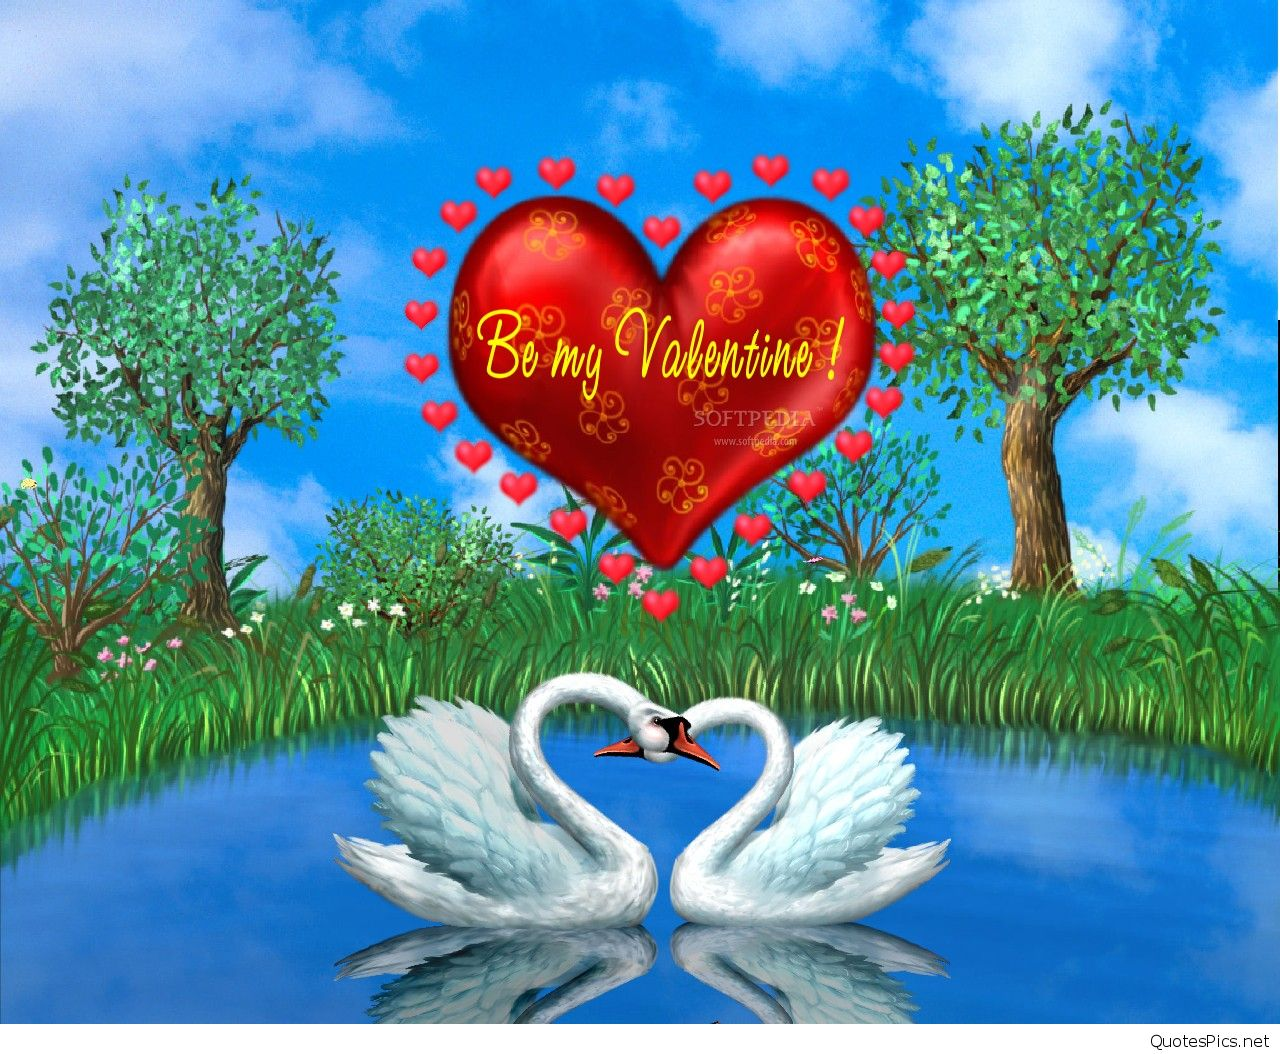 Animated Love Wallpaper For Mobile Phone 254366 Love Animated